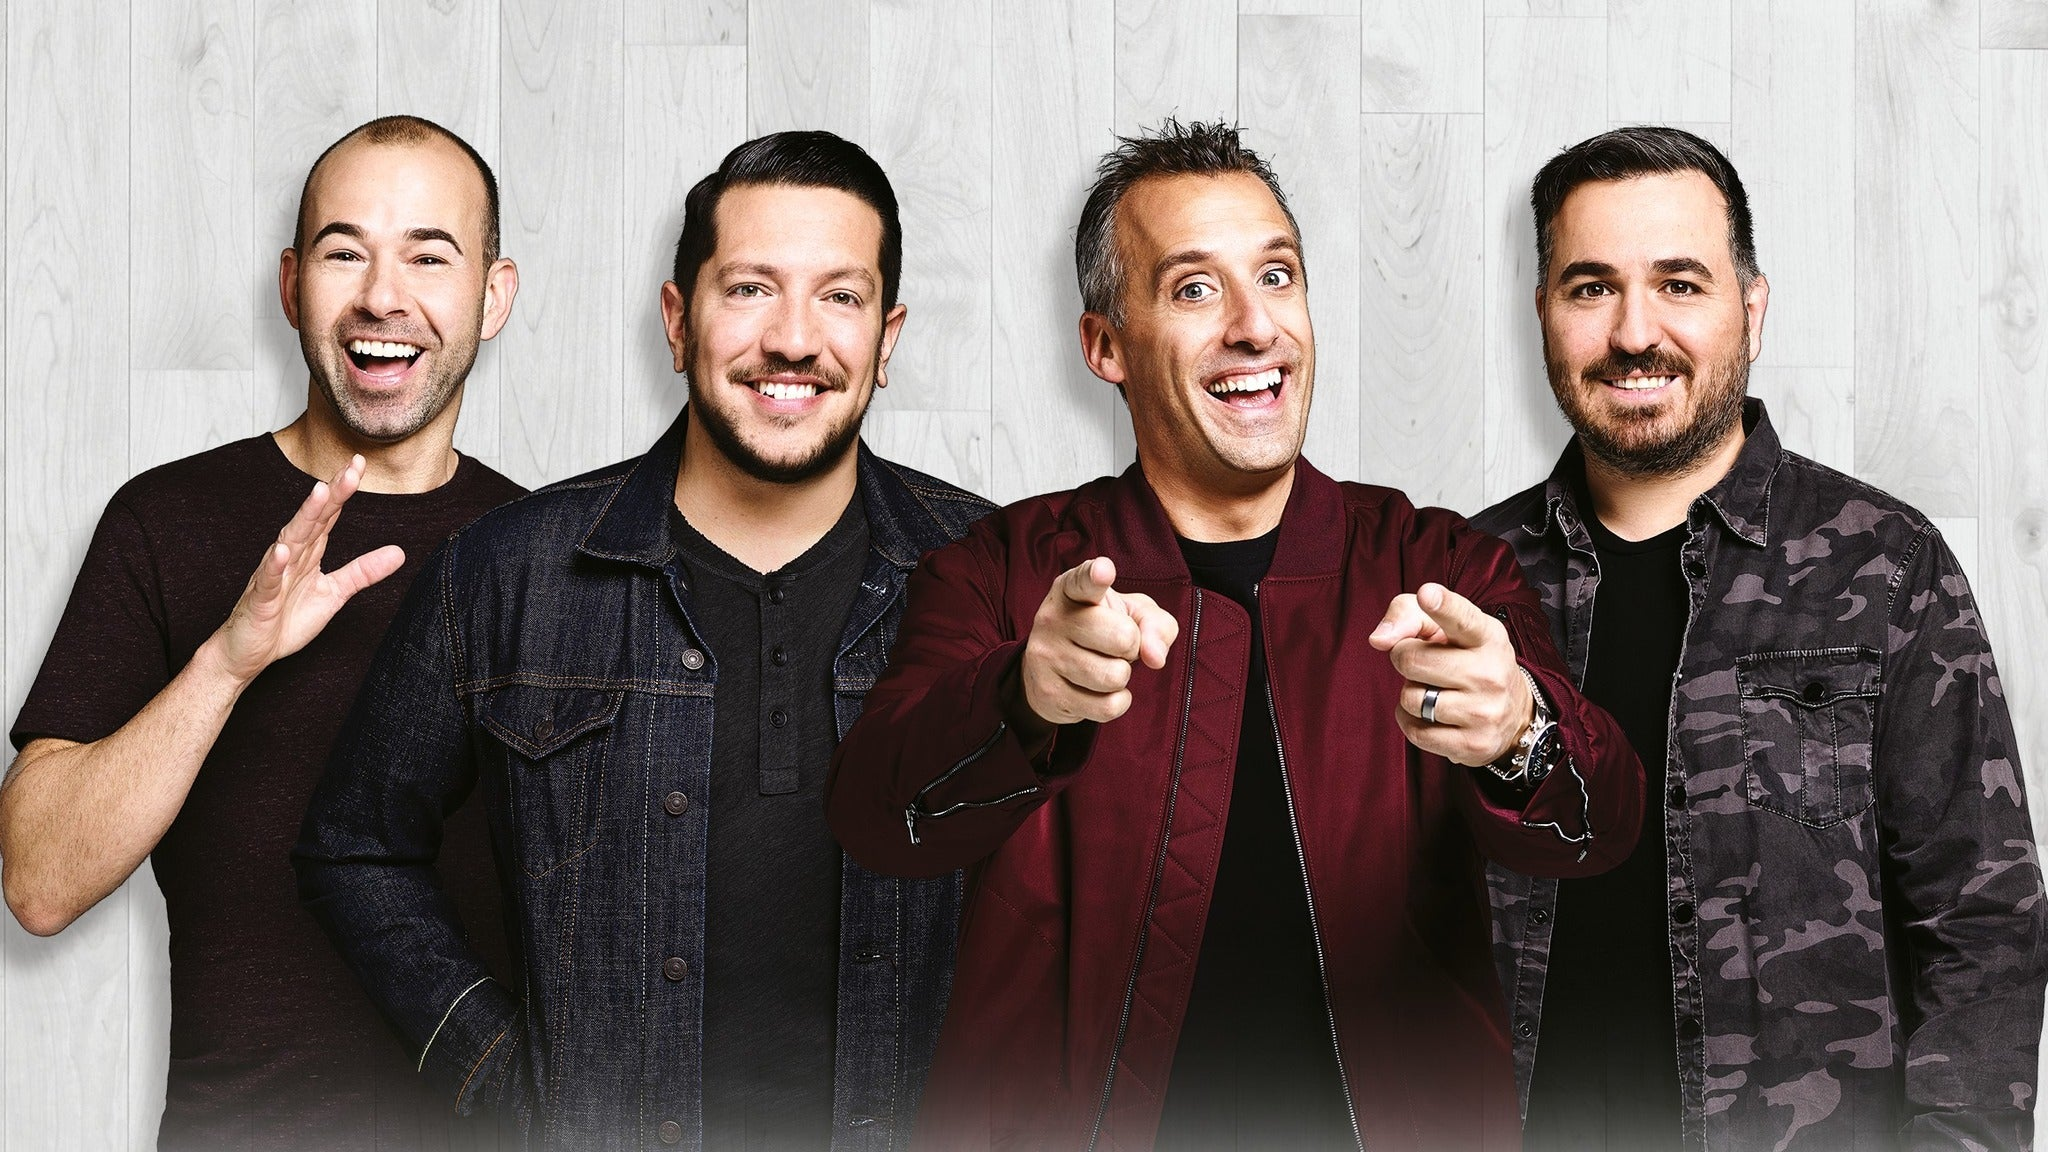 Impractical Jokers The Scoopski Potatoes Tour